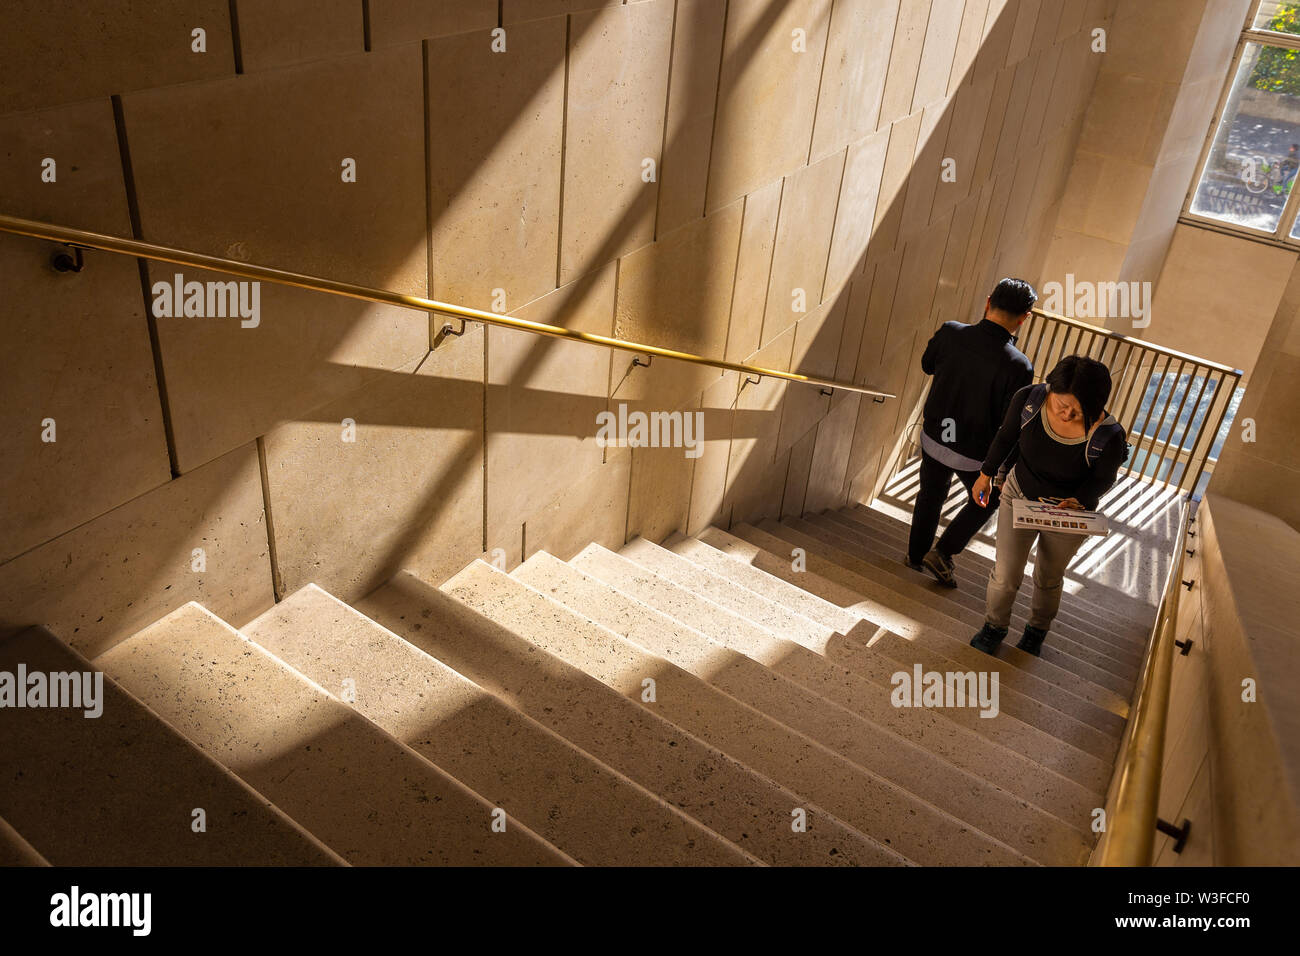 Paris, France - September 30, 2018: Man and Woman walking on old mable stair brighten up by sunlight from windows. - Stock Image